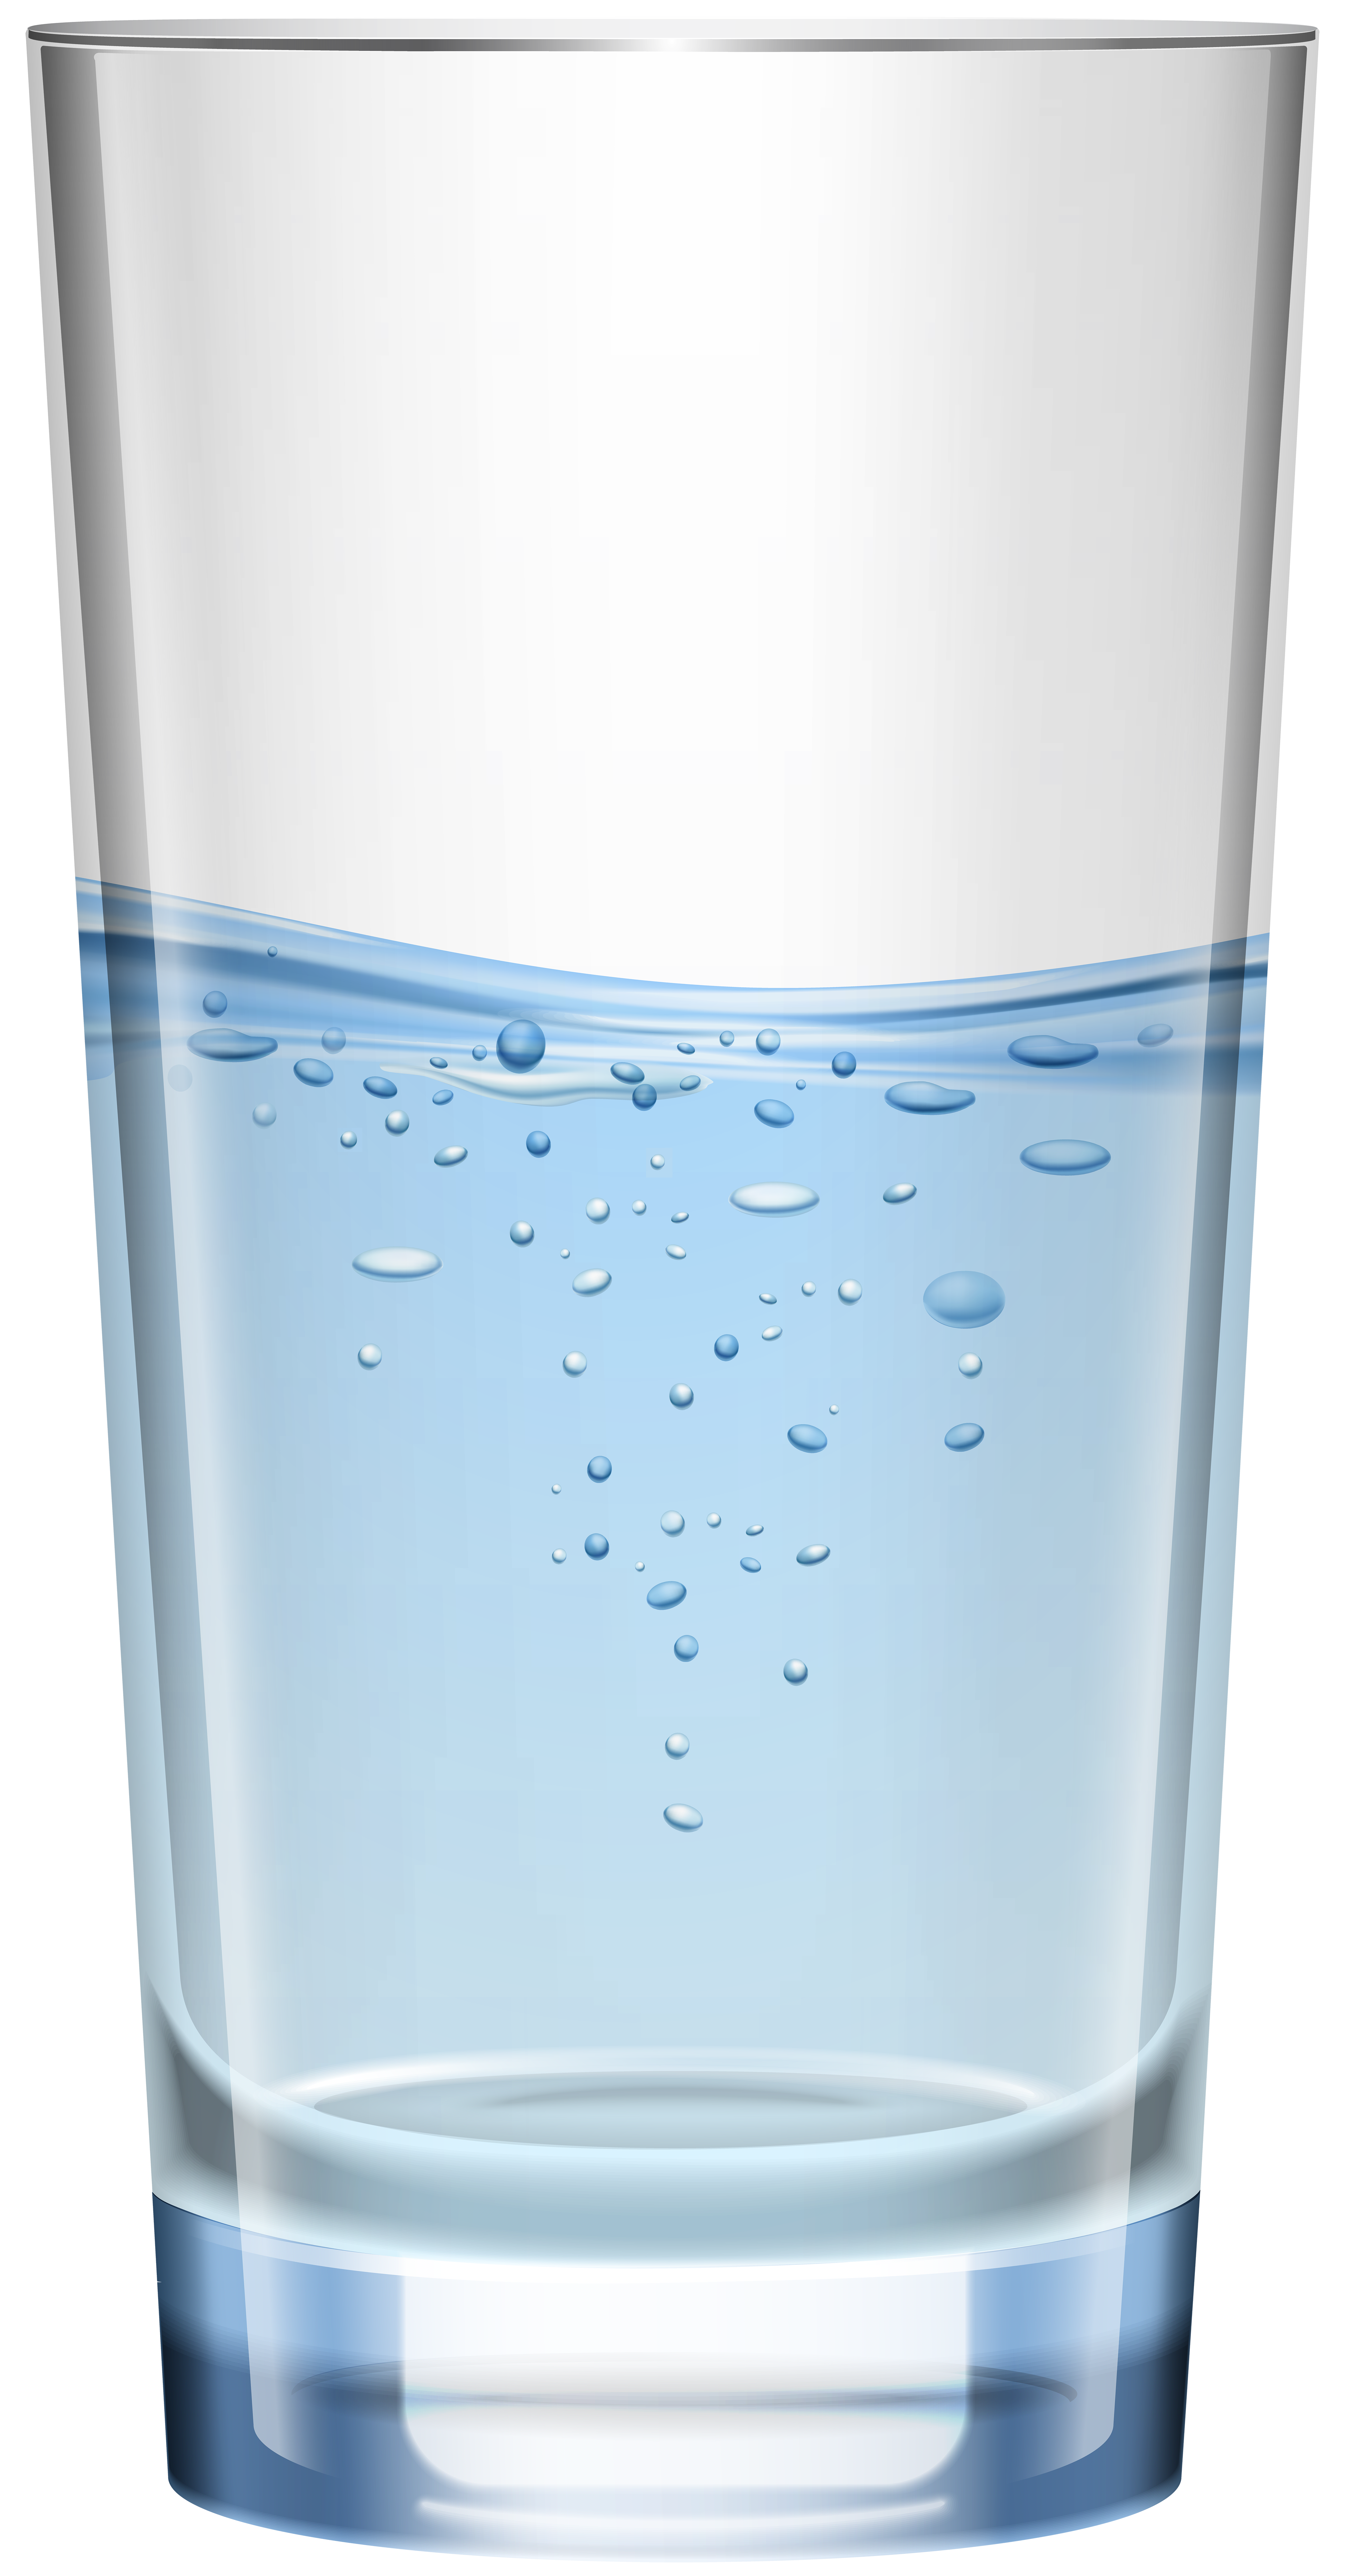 Cup of water png. Scalable vector graphics icon